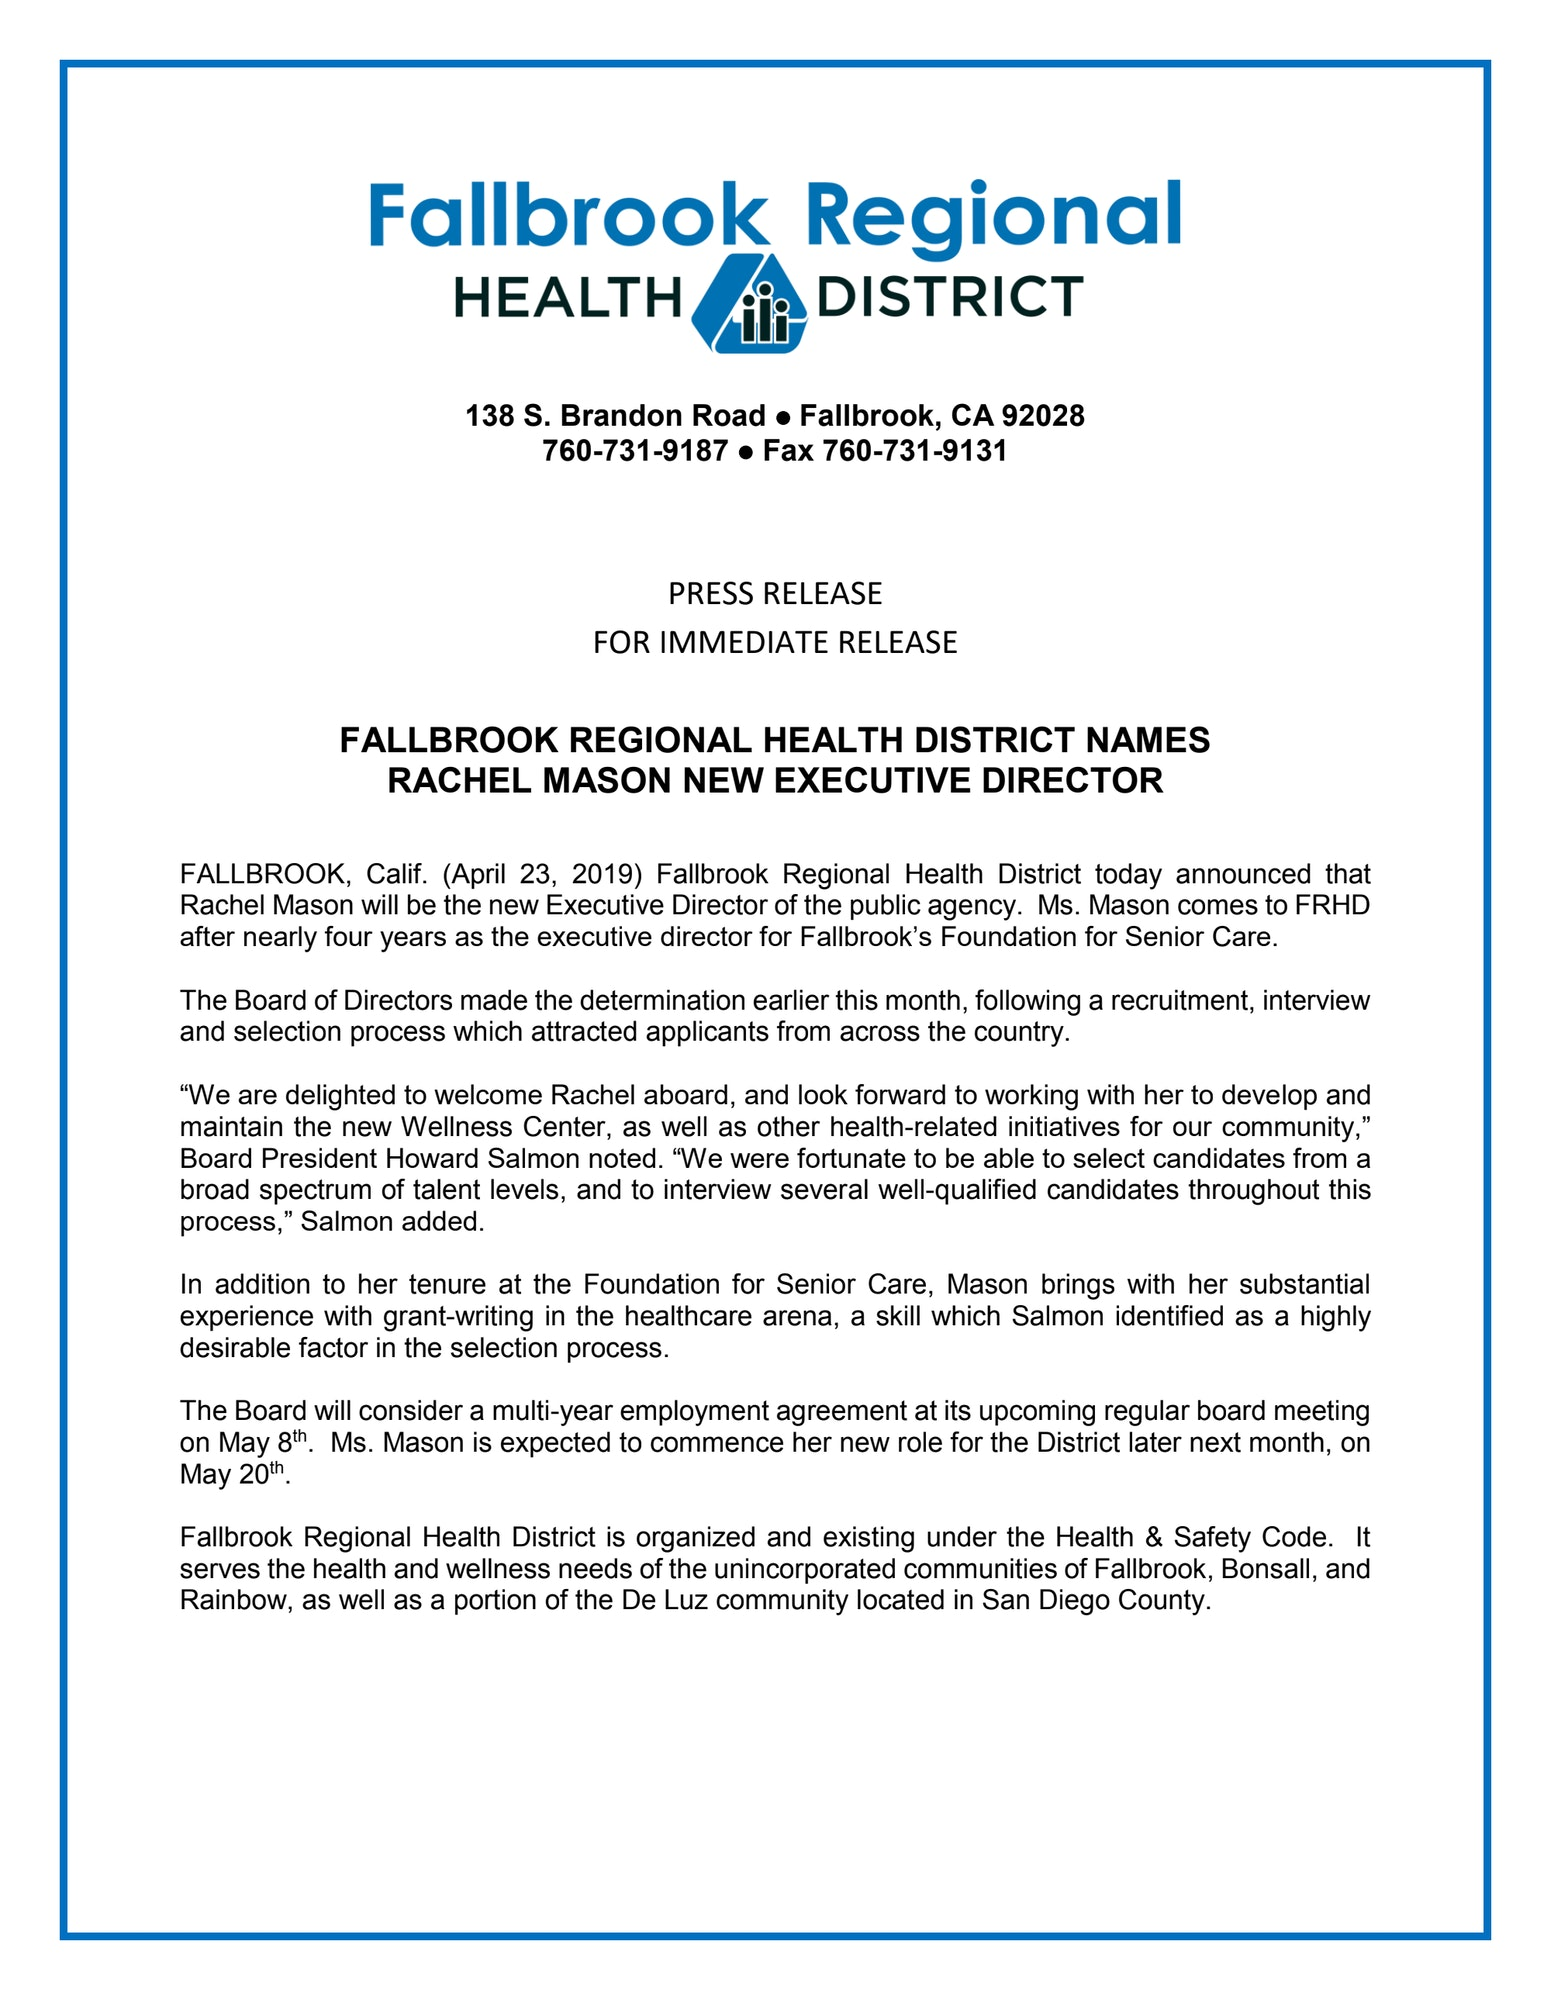 "FALLBROOK, Calif. (April 23, 2019) Fallbrook Regional Health District today announced that Rachel Mason will be the new Executive Director of the public agency.  Ms. Mason comes to FRHD after nearly four years as the executive director for Fallbrook's Foundation for Senior Care.  The Board of Directors made the determination earlier this month, following a recruitment, interview and selection process which attracted applicants from across the country.    ""We are delighted to welcome Rachel aboard, and look forward to working with her to develop and maintain the new Wellness Center, as well as other health-related initiatives for our community,"" Board President Howard Salmon noted. ""We were fortunate to be able to select candidates from a broad spectrum of talent levels, and to interview several well-qualified candidates throughout this process,"" Salmon added.    In addition to her tenure at the Foundation for Senior Care, Mason brings with her substantial experience with grant-writing in the healthcare arena, a skill which Salmon identified as a highly desirable factor in the selection process.    The Board will consider a multi-year employment agreement at its upcoming regular board meeting on May 8th.  Ms. Mason is expected to commence her new role for the District later next month, on May 20th.   Fallbrook Regional Health District is organized and existing under the Health & Safety Code.  It serves the health and wellness needs of the unincorporated communities of Fallbrook, Bonsall, and Rainbow, as well as a portion of the De Luz community located in San Diego County."